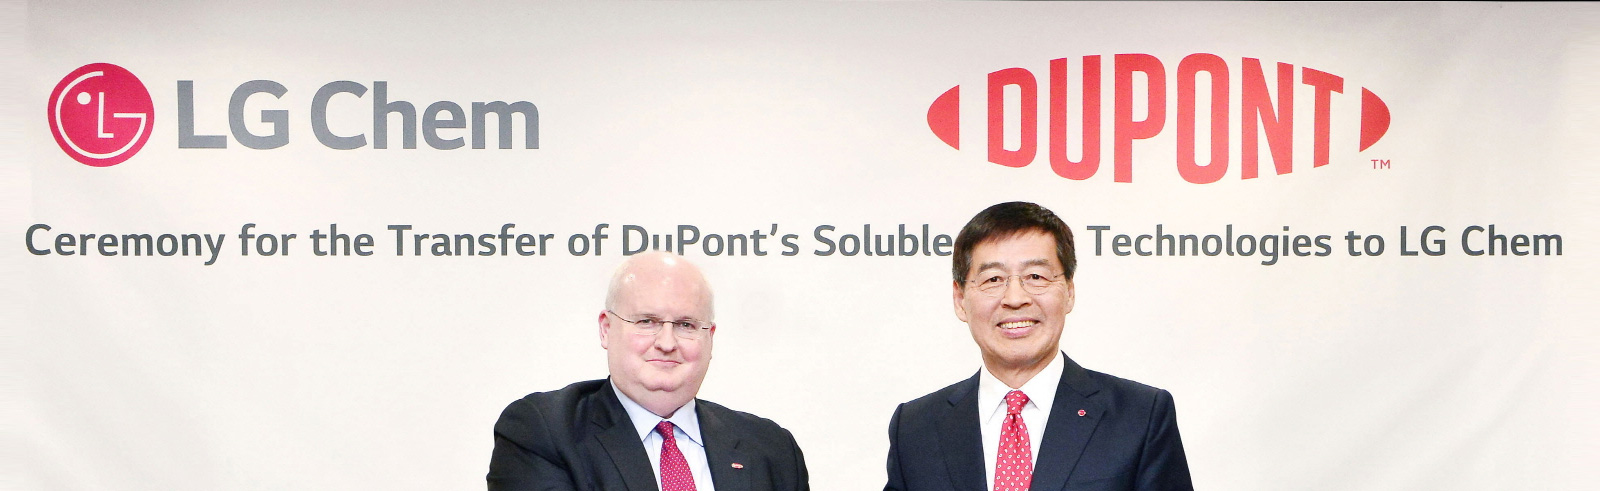 LG Chem buys key technologies for soluble OLEDs from DuPont